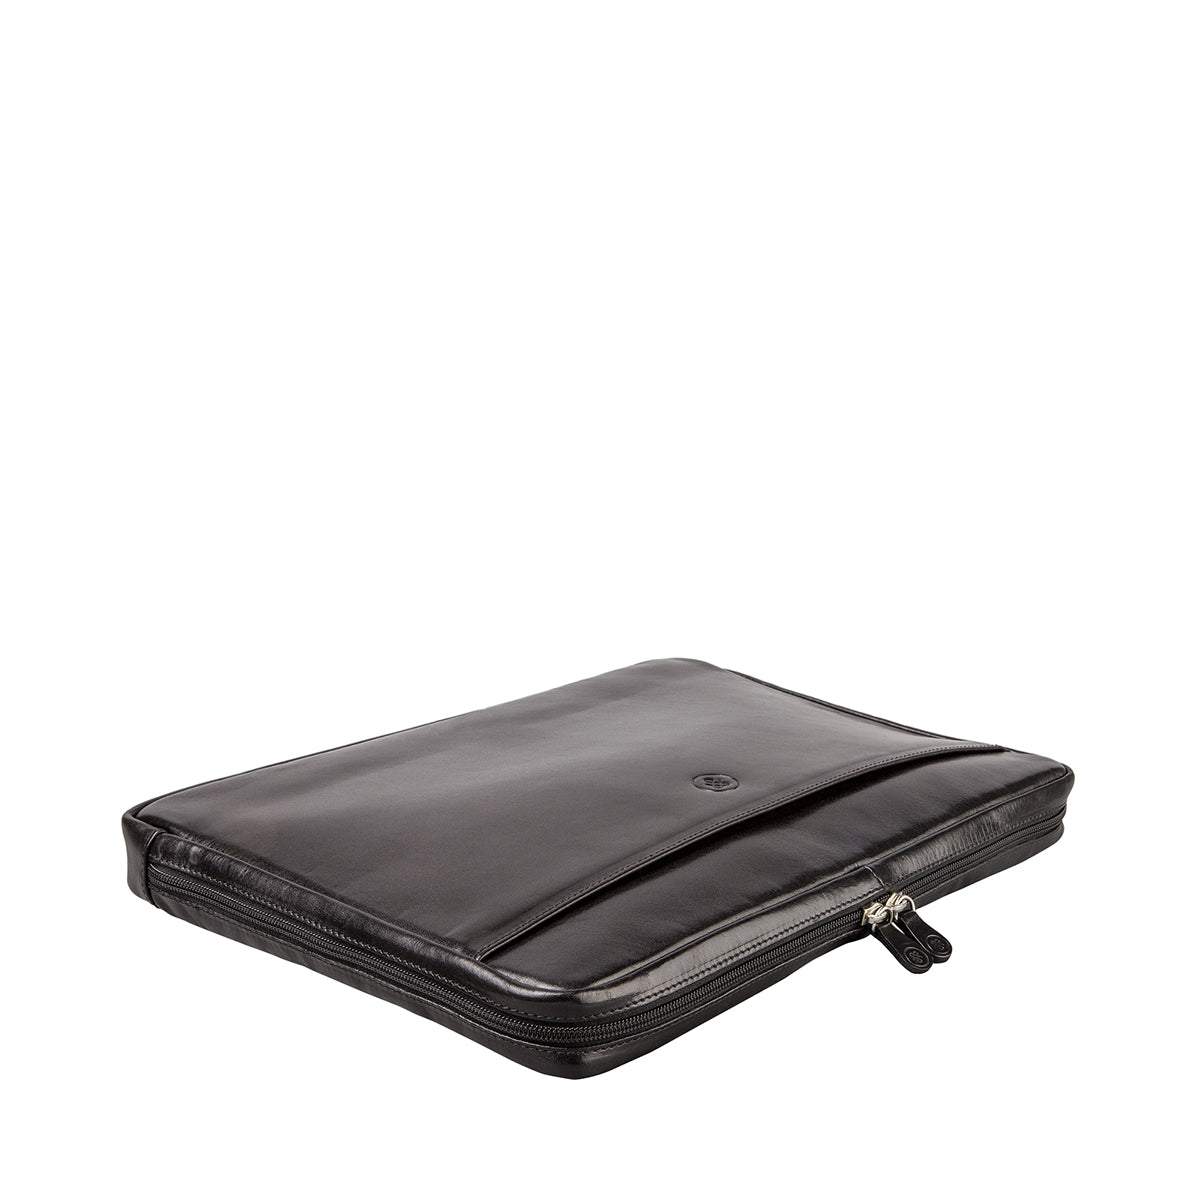 "Image 4 of the 'Verzino' Black Veg Tanned 15"" Leather Laptop Case"